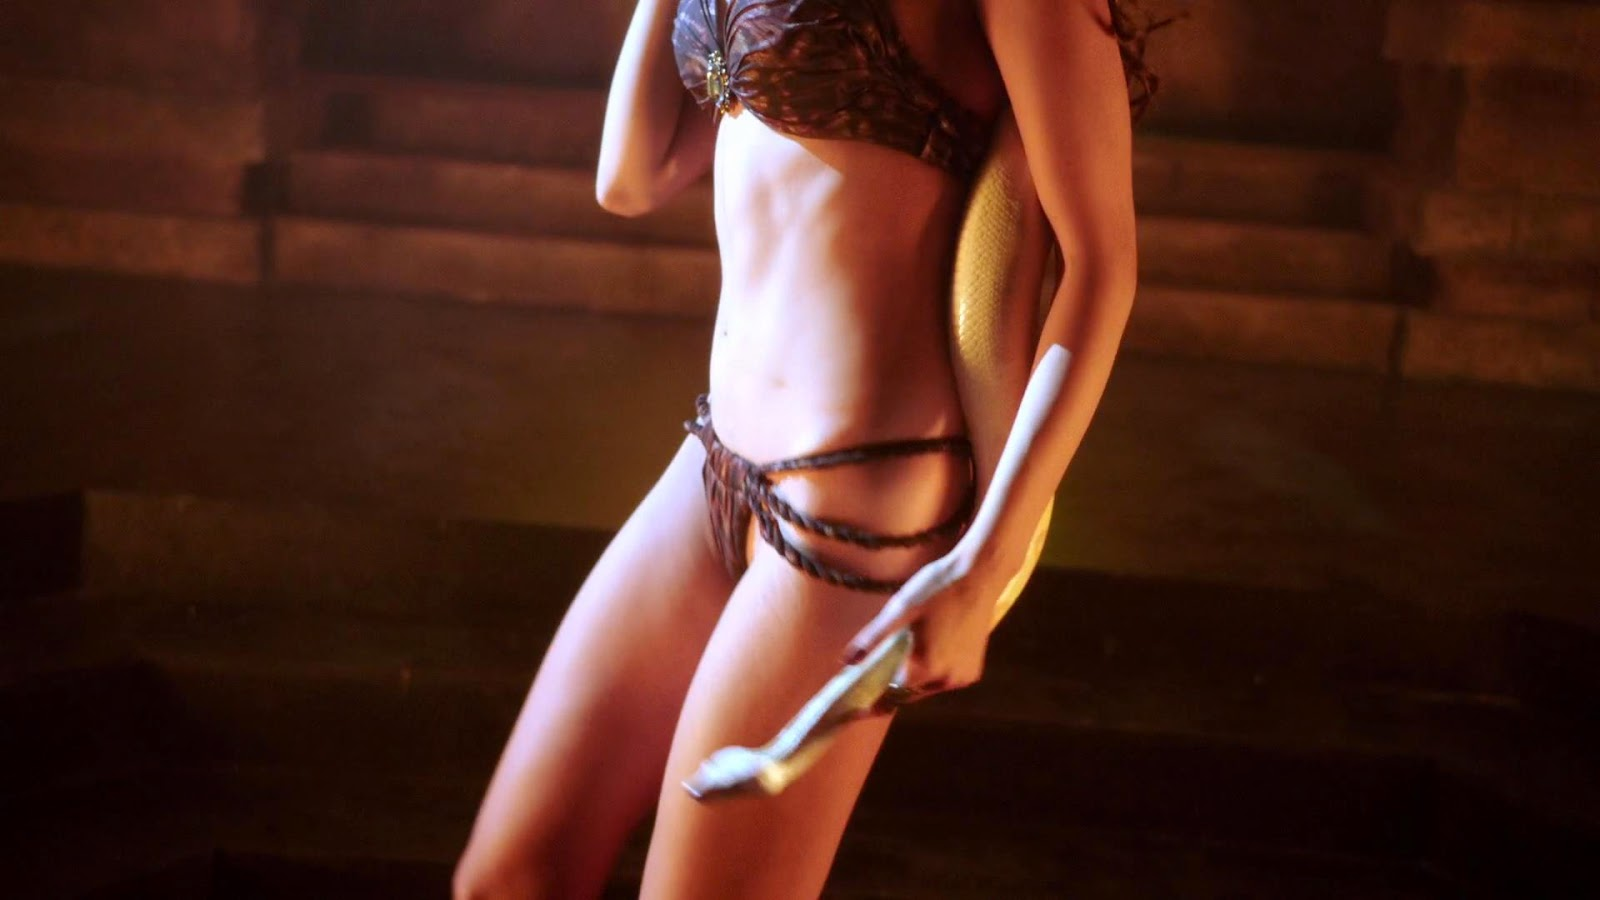 Eiza gonzalez from dusk till dawn s2e01